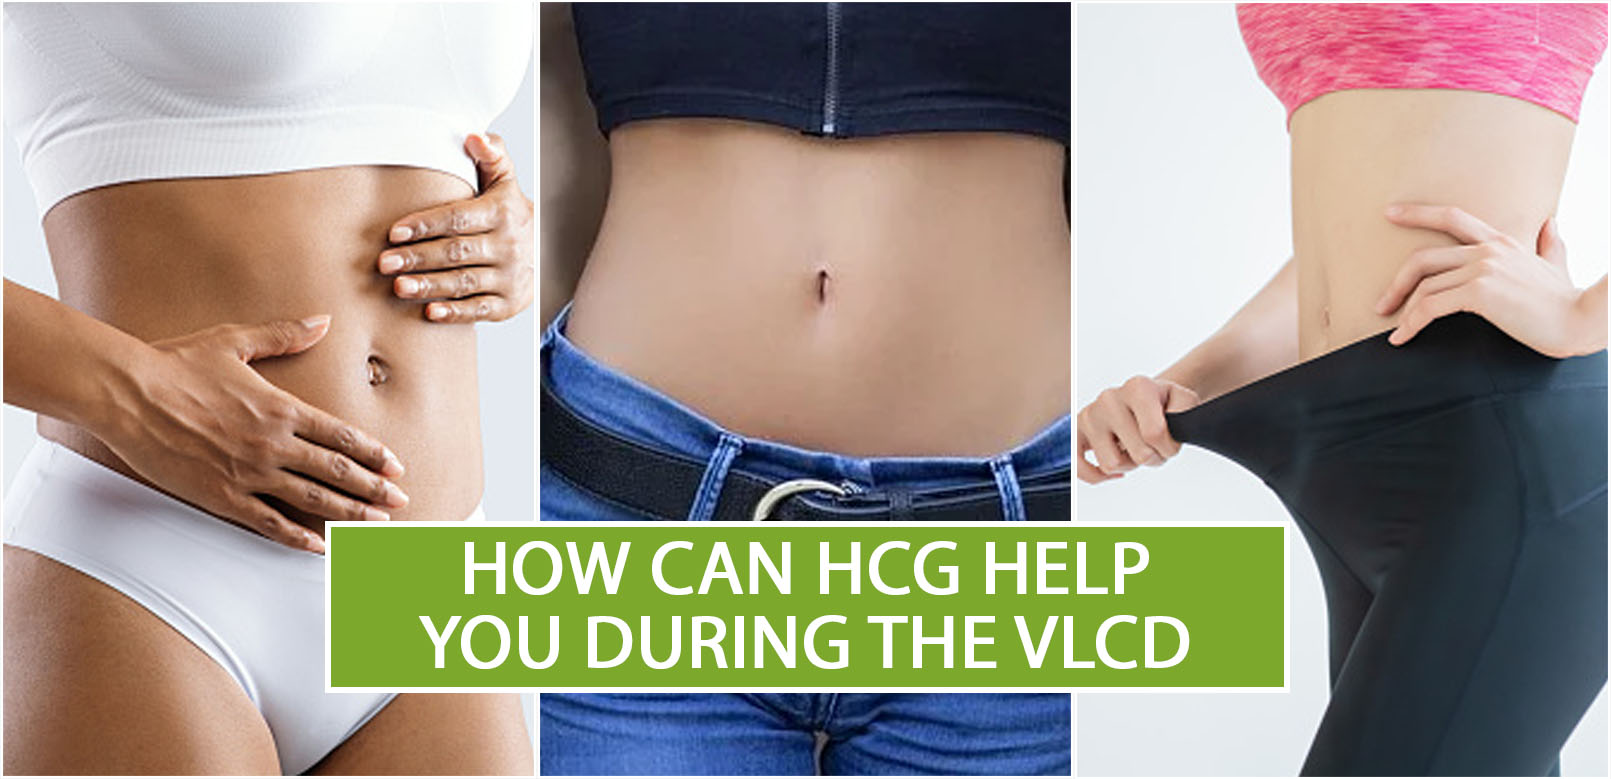 HOW CAN HCG HELP YOU DURING THE VLCD